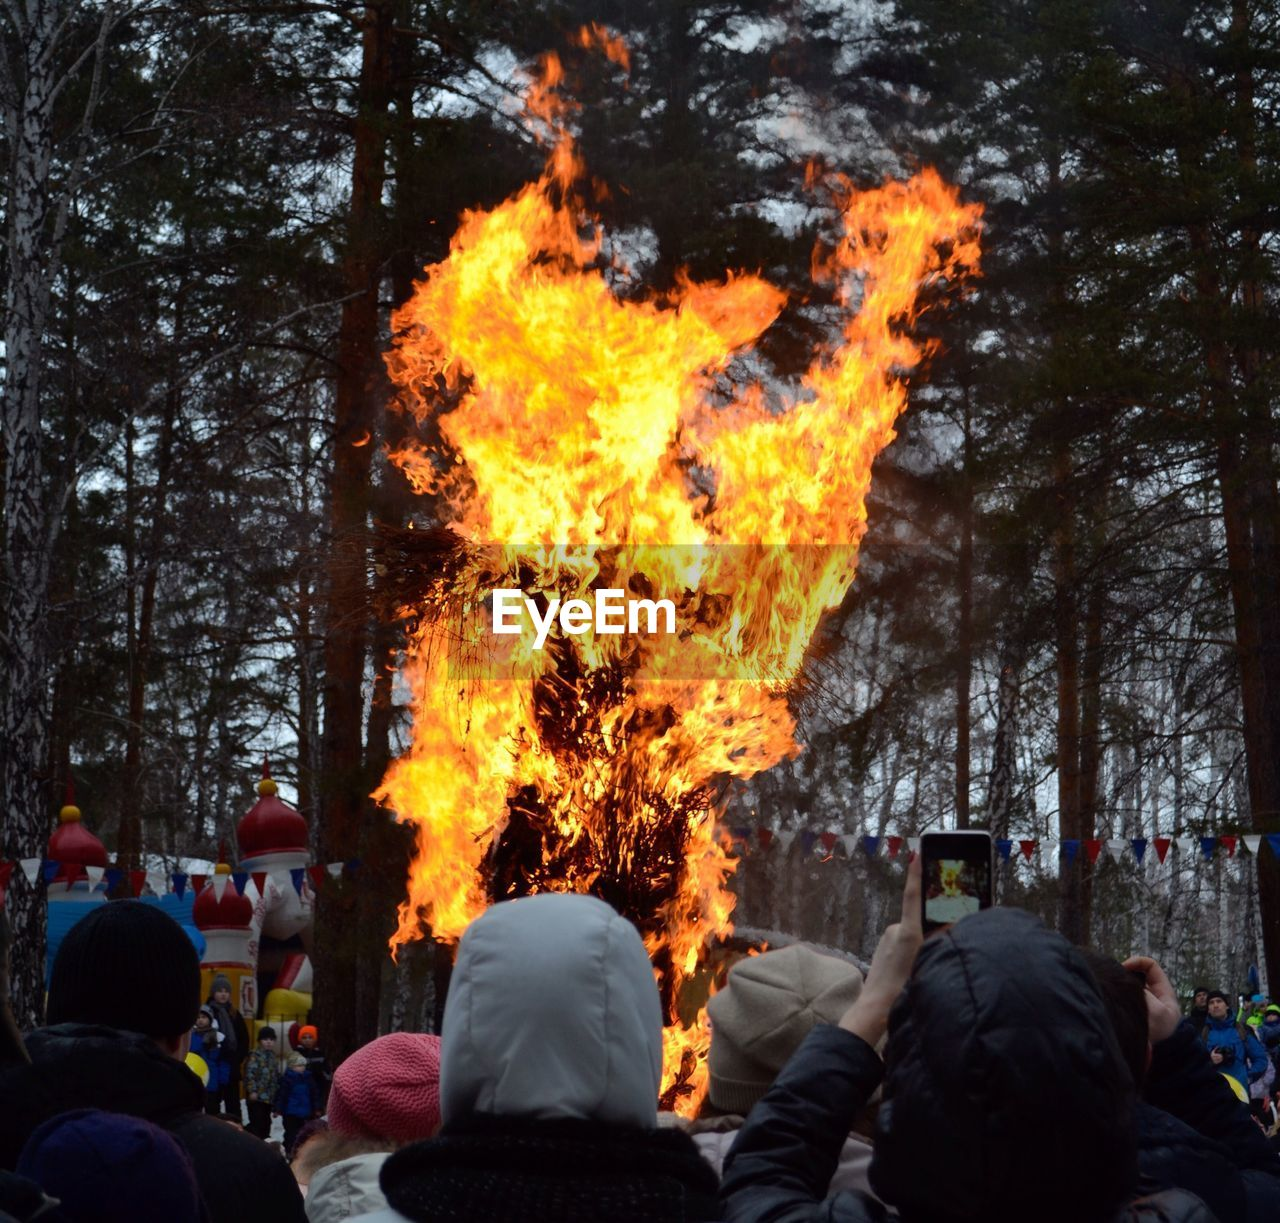 tree, real people, leisure activity, burning, men, flame, lifestyles, rear view, photographing, outdoors, women, one person, technology, day, photography themes, nature, sky, people, adult, adults only